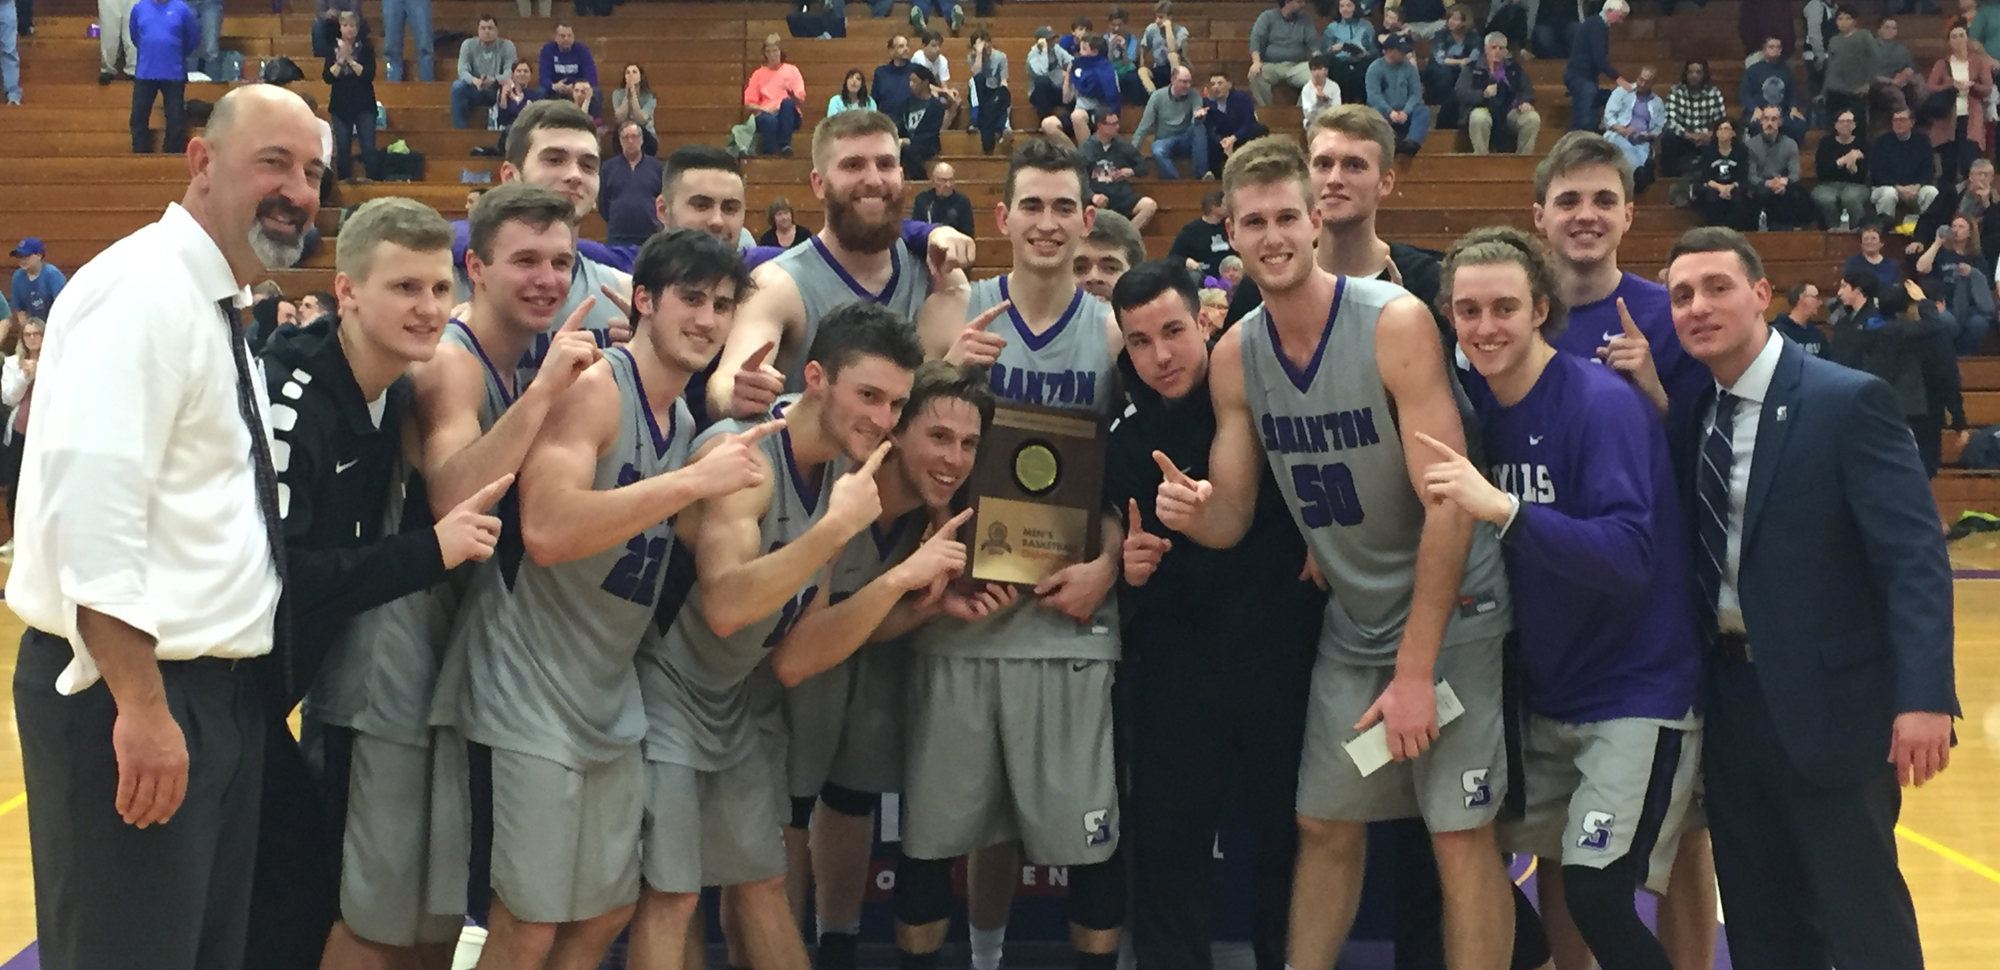 The men's basketball team captured its seventh Landmark Conference championship in the conference's 10-year history on Saturday.